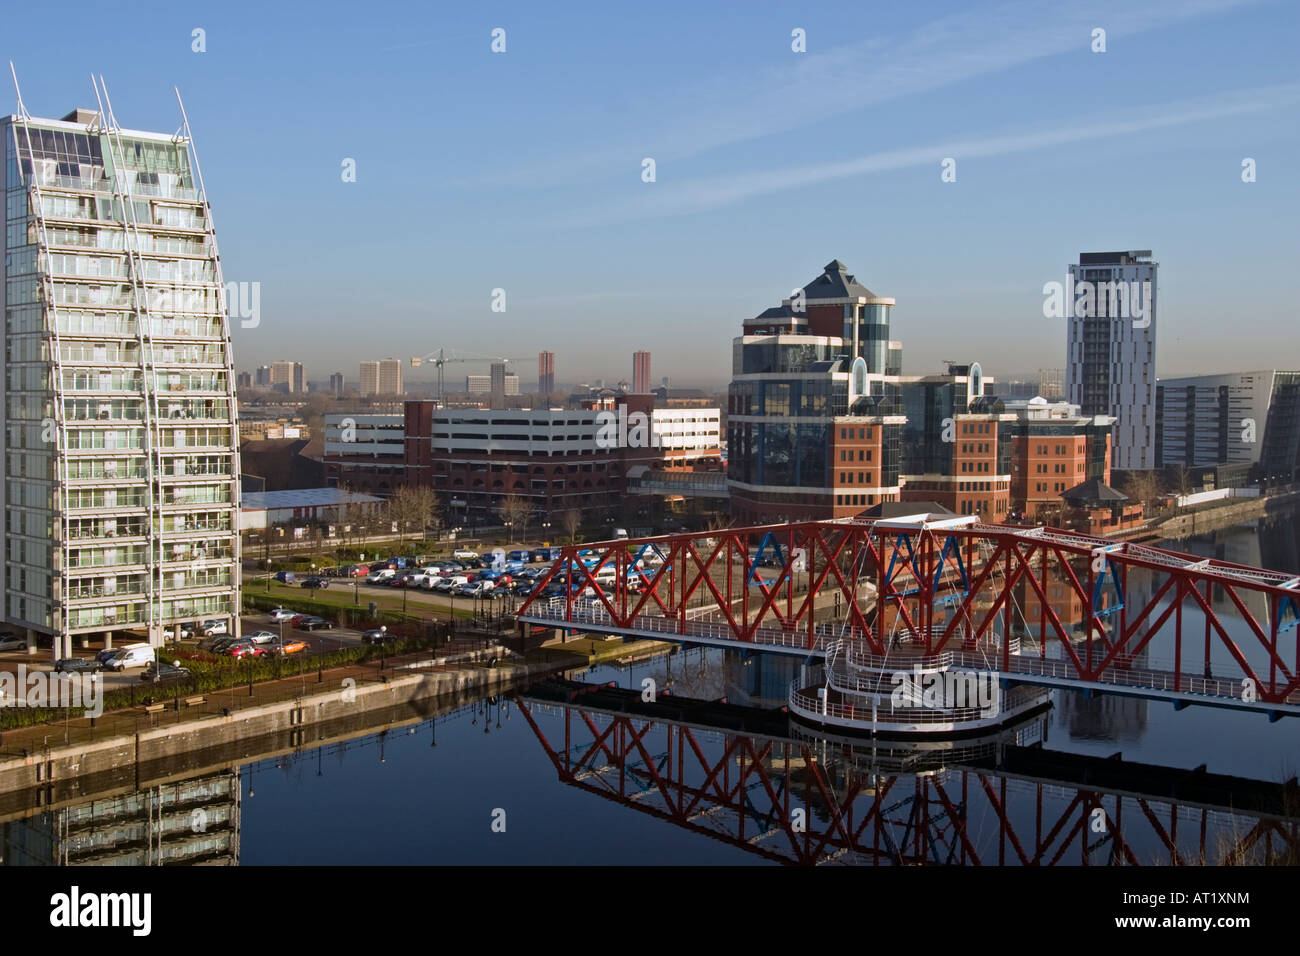 Salford Quays Manchester. Includes NV Building, Huron and Erie Basin and Detroit Bridge. - Stock Image